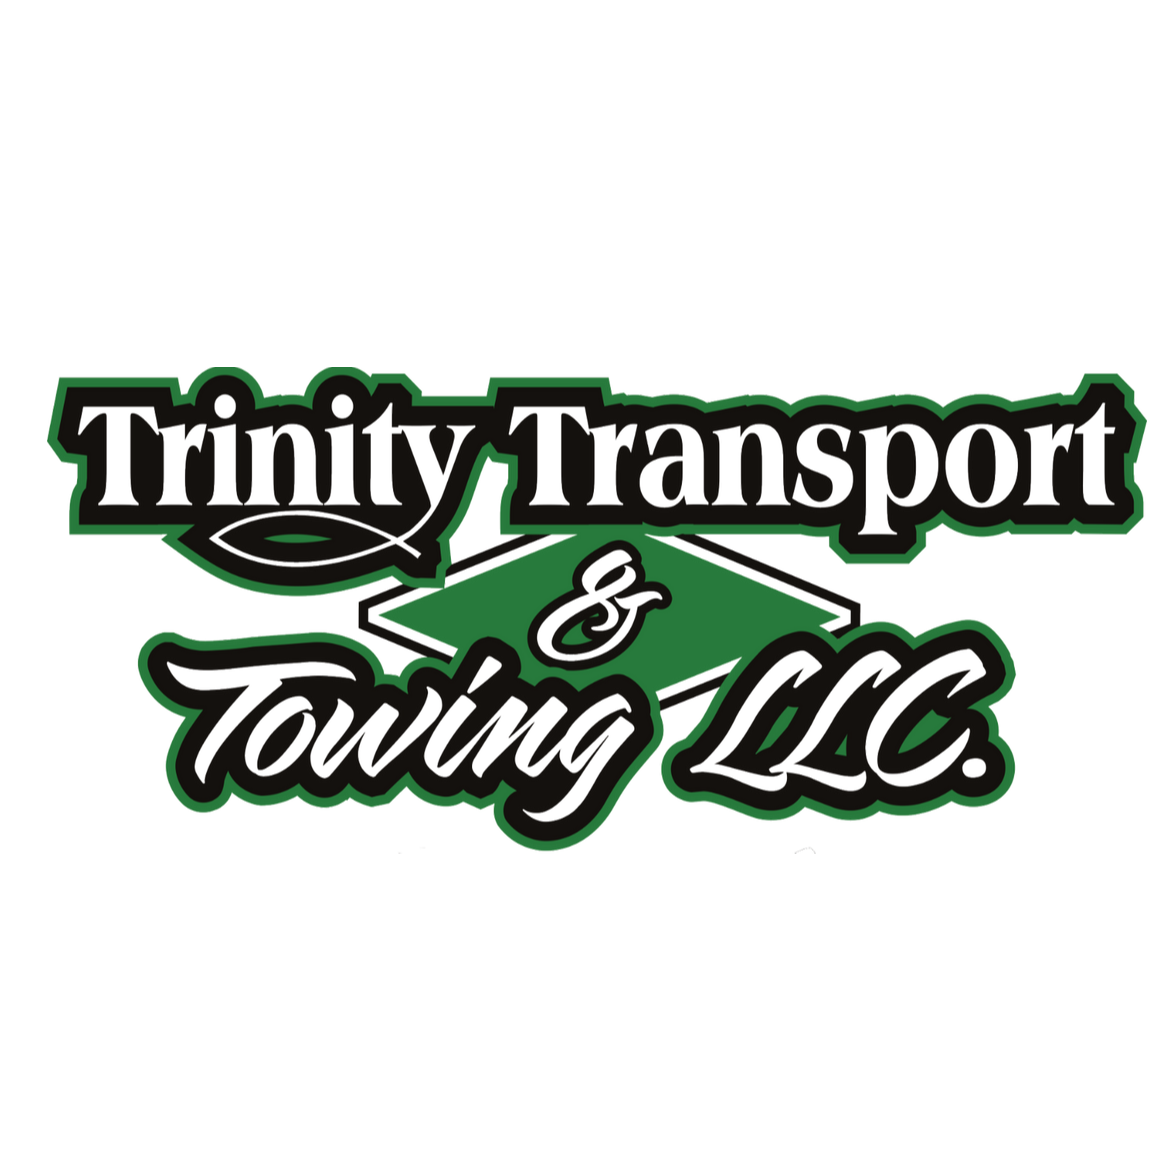 Trinity Transport & Towing, LLC logo